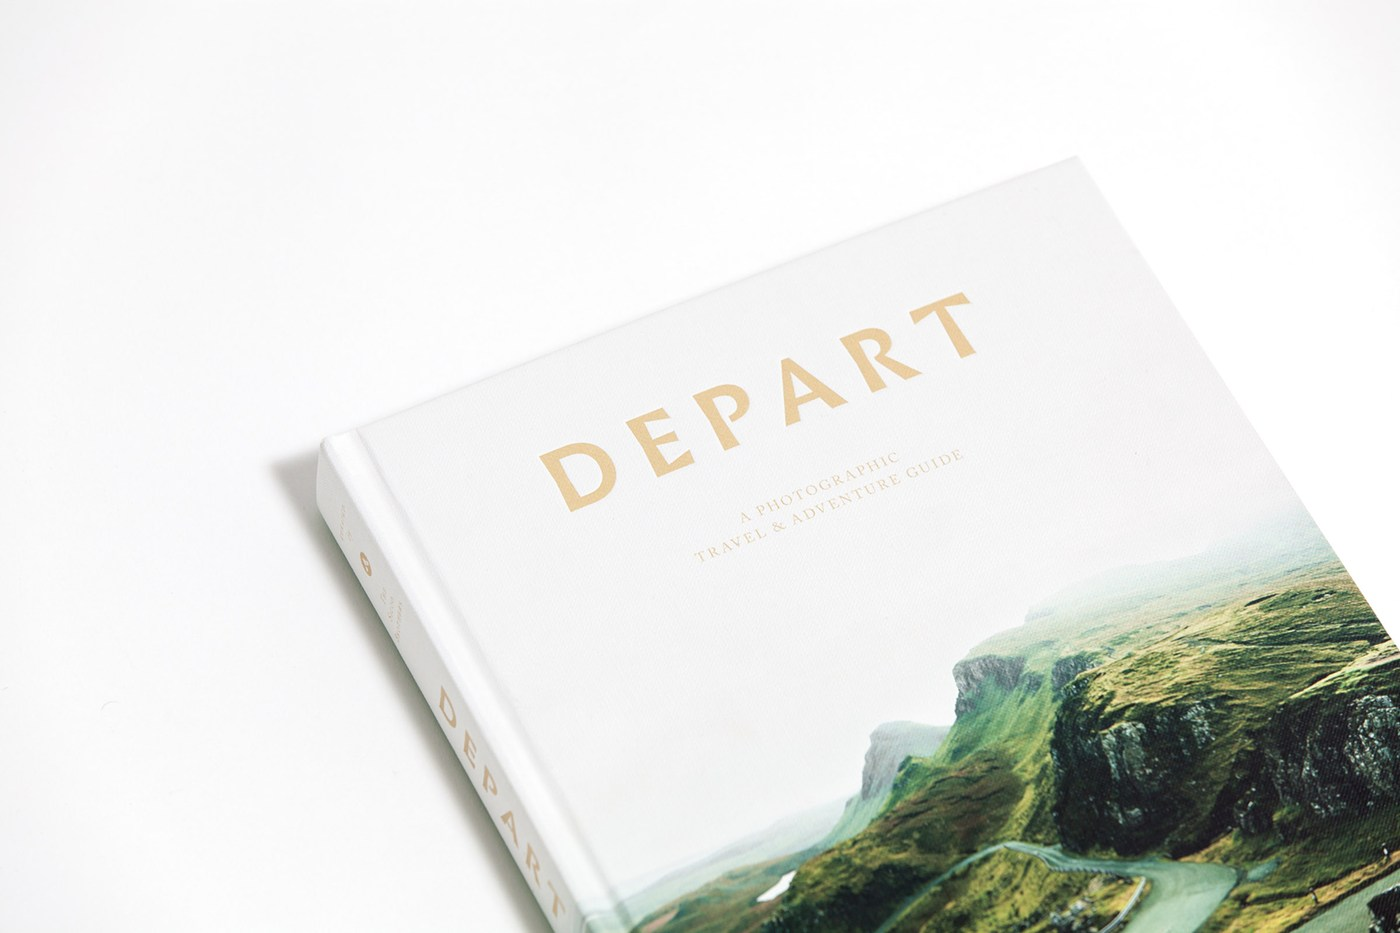 depart-mendo-book-2016-photographers-travel-1